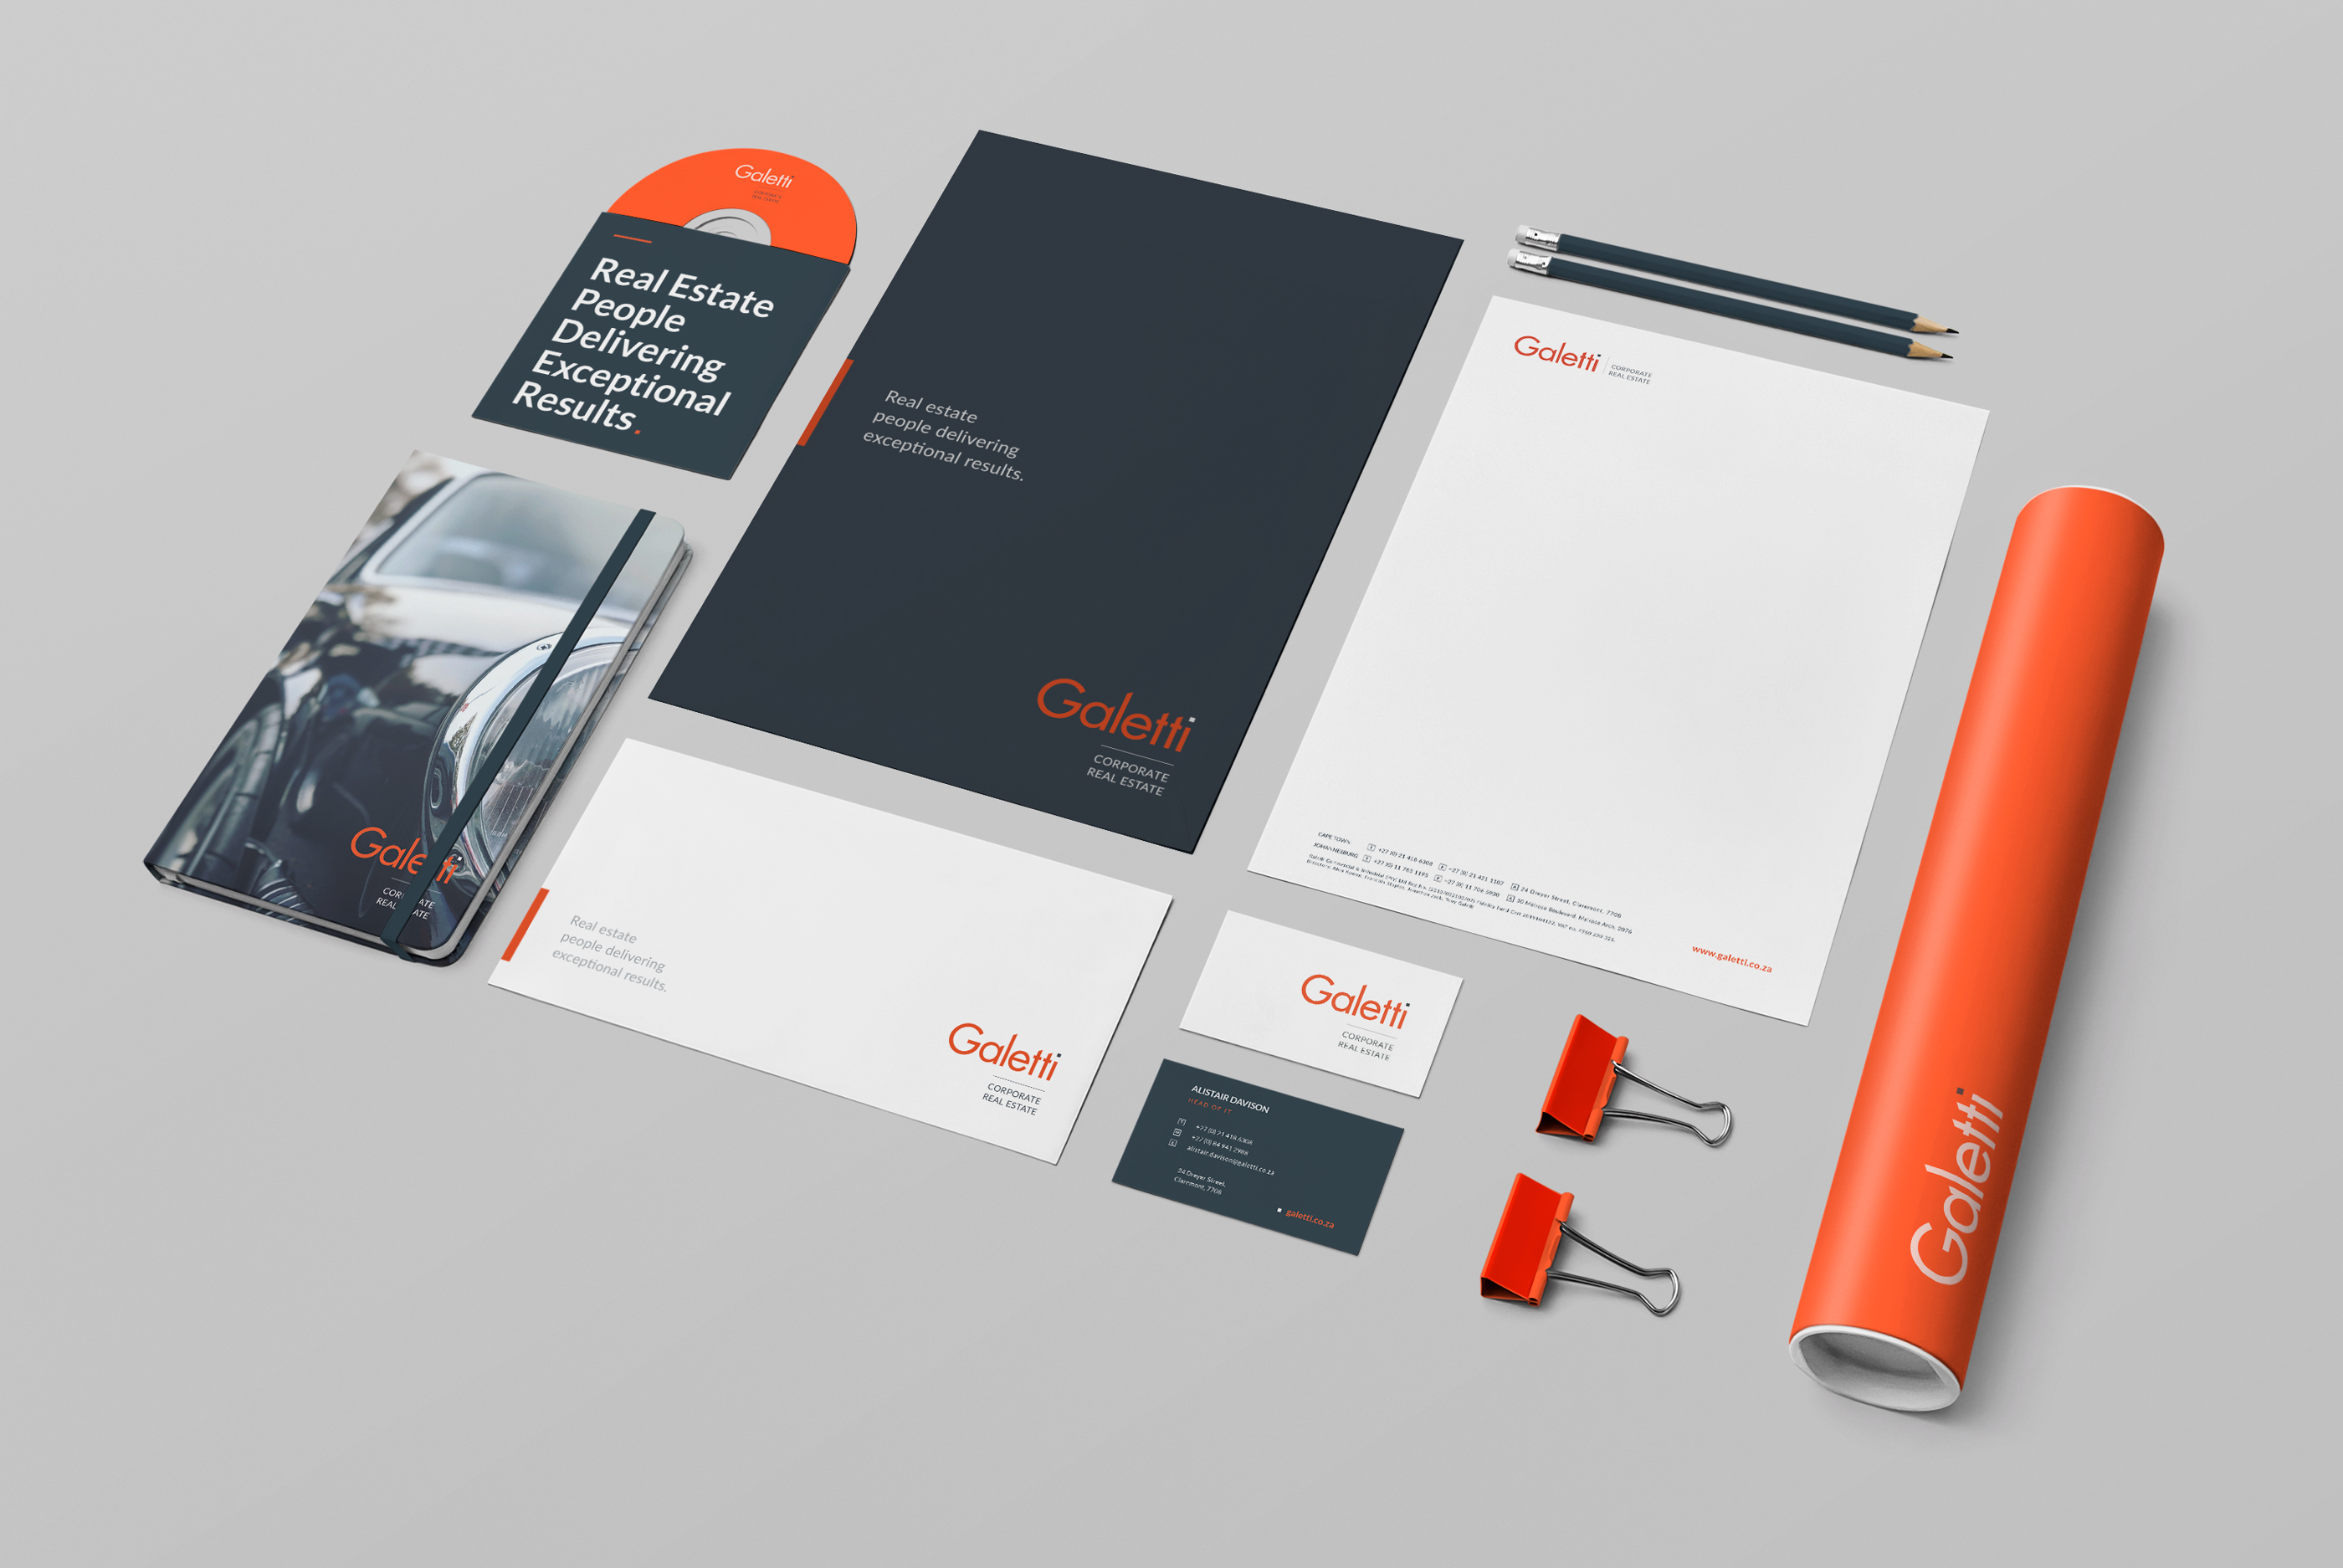 Galetti CRE corporate identity design 3